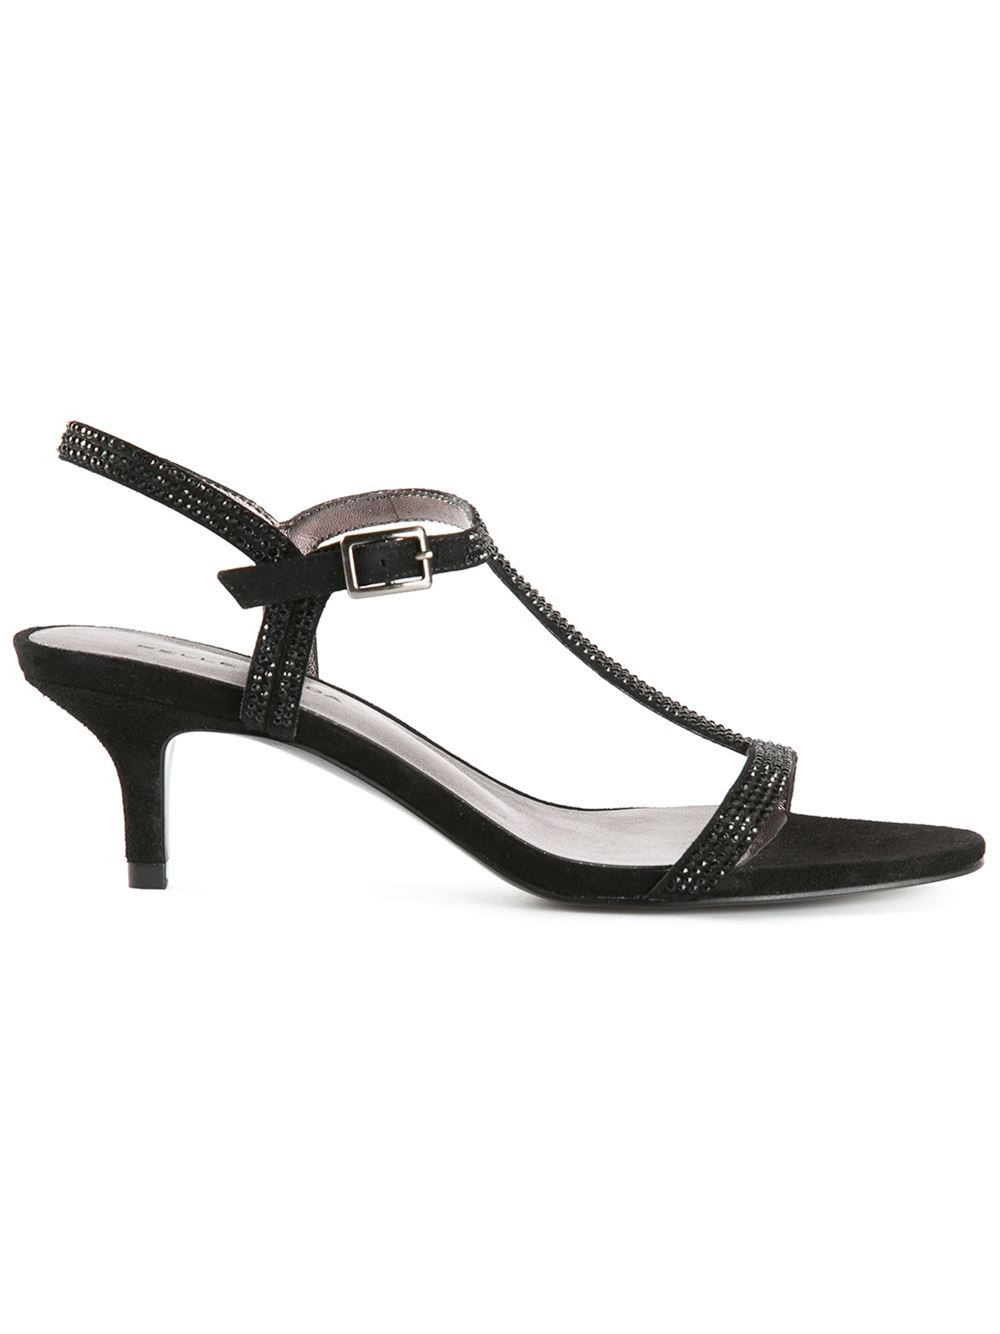 Lyst Pelle Moda Fact Sandals In Black